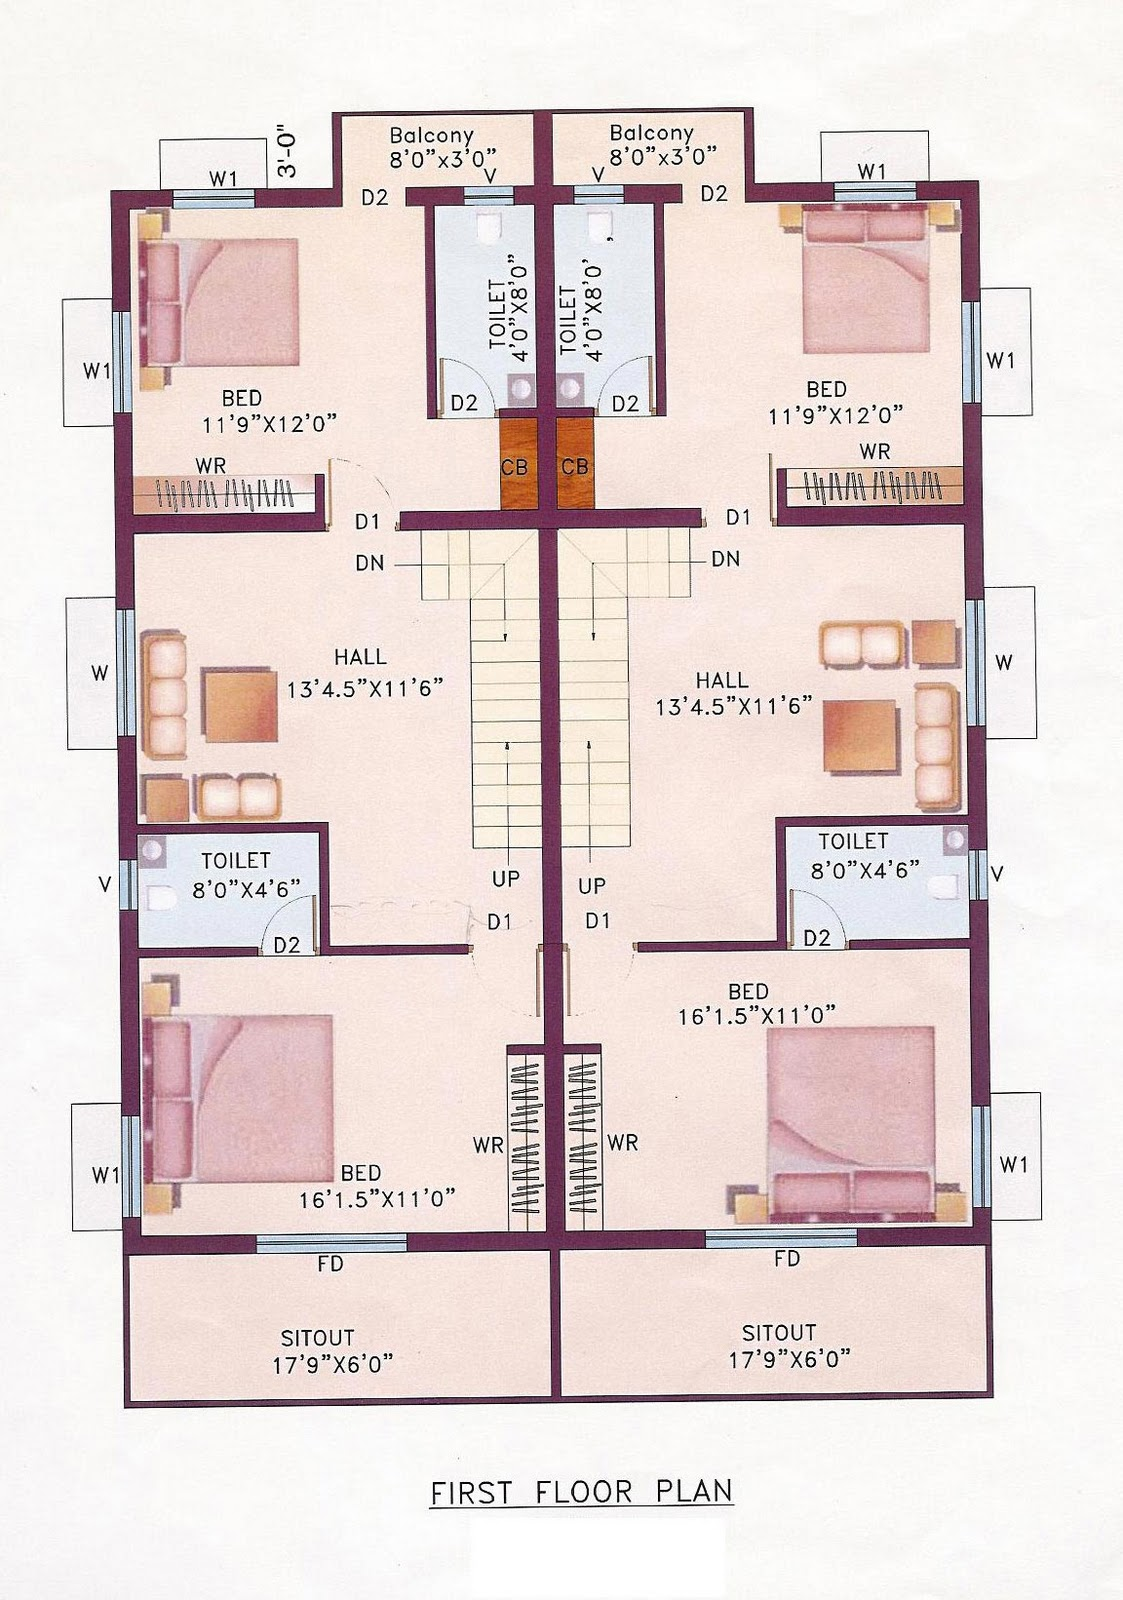 House plans and design house plans india with photos for 1st floor house plan india